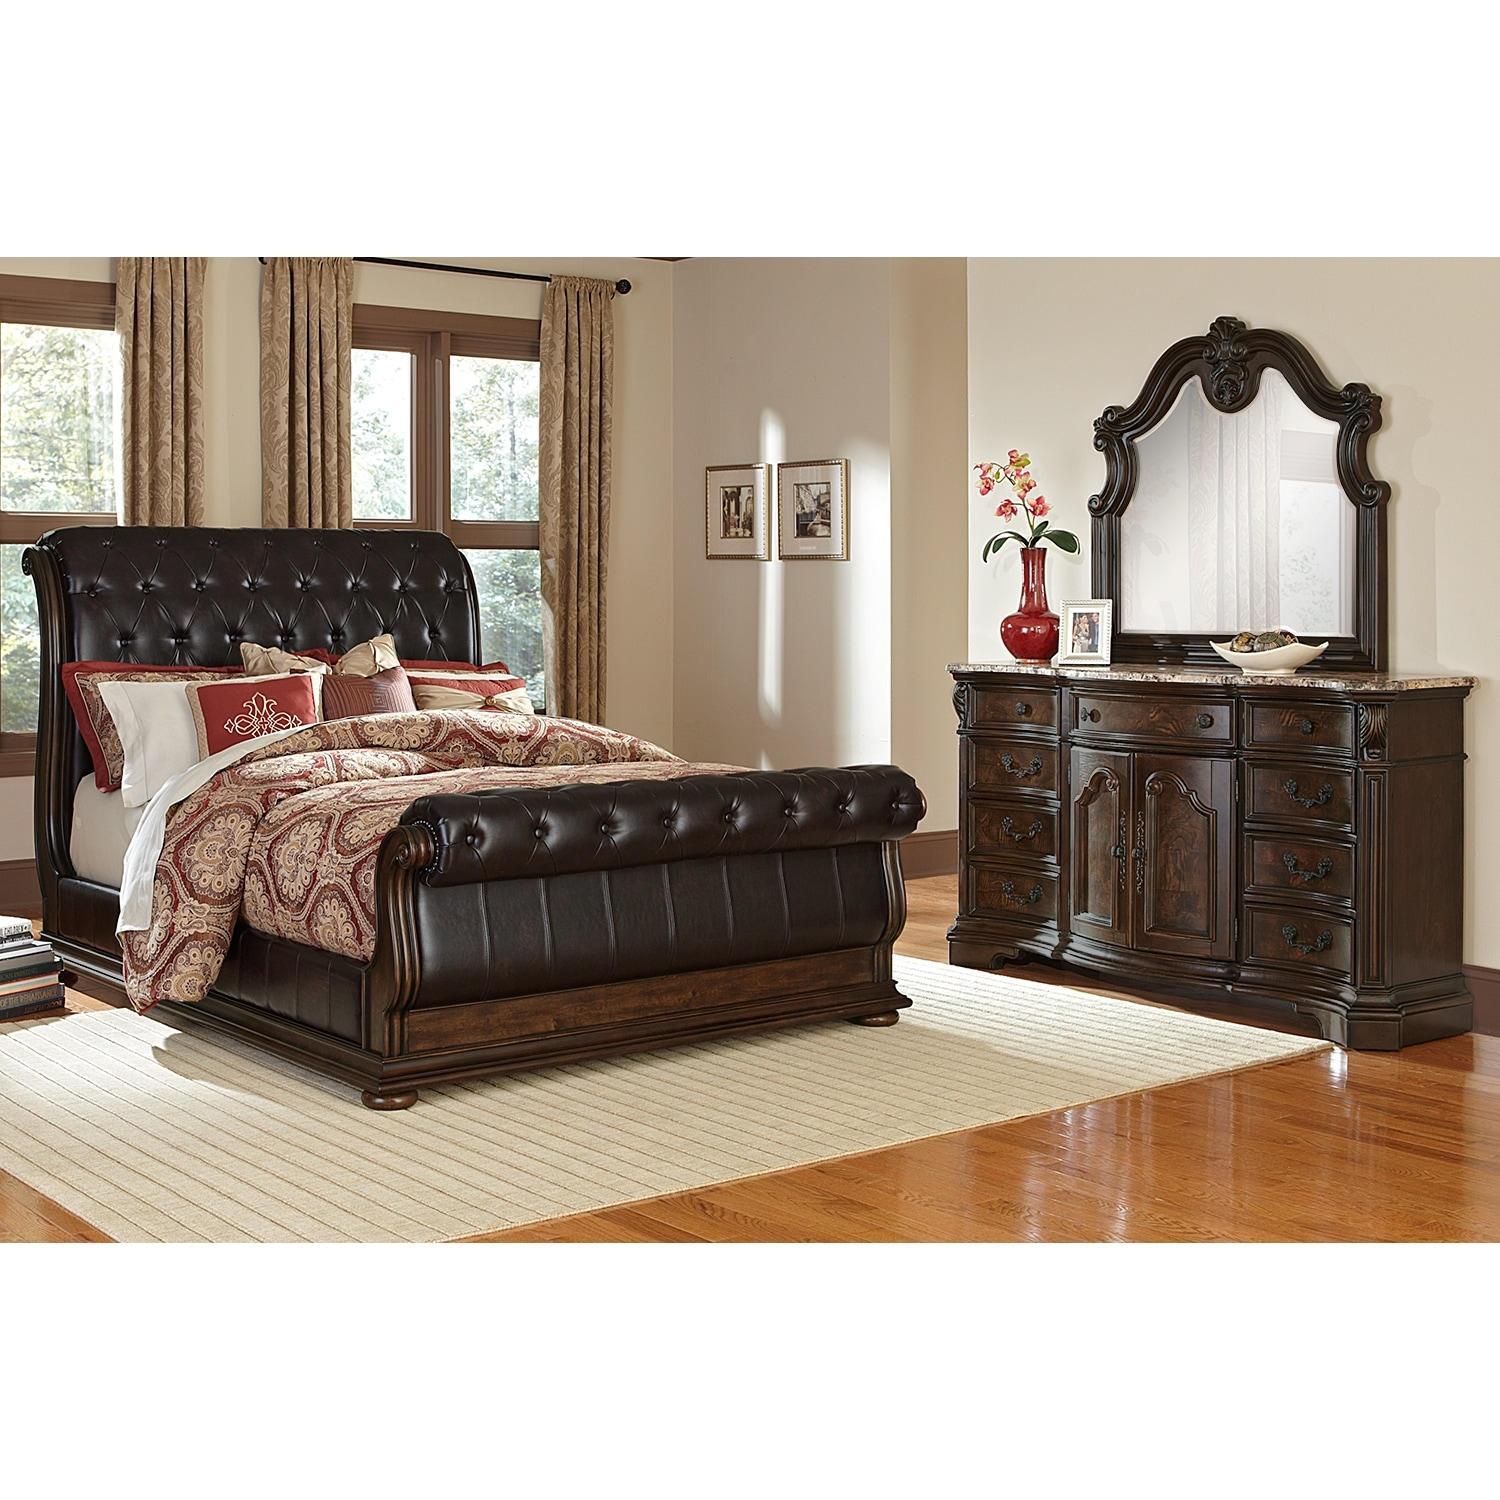 [Monticello Pecan II 5 Pc. King Bedroom]